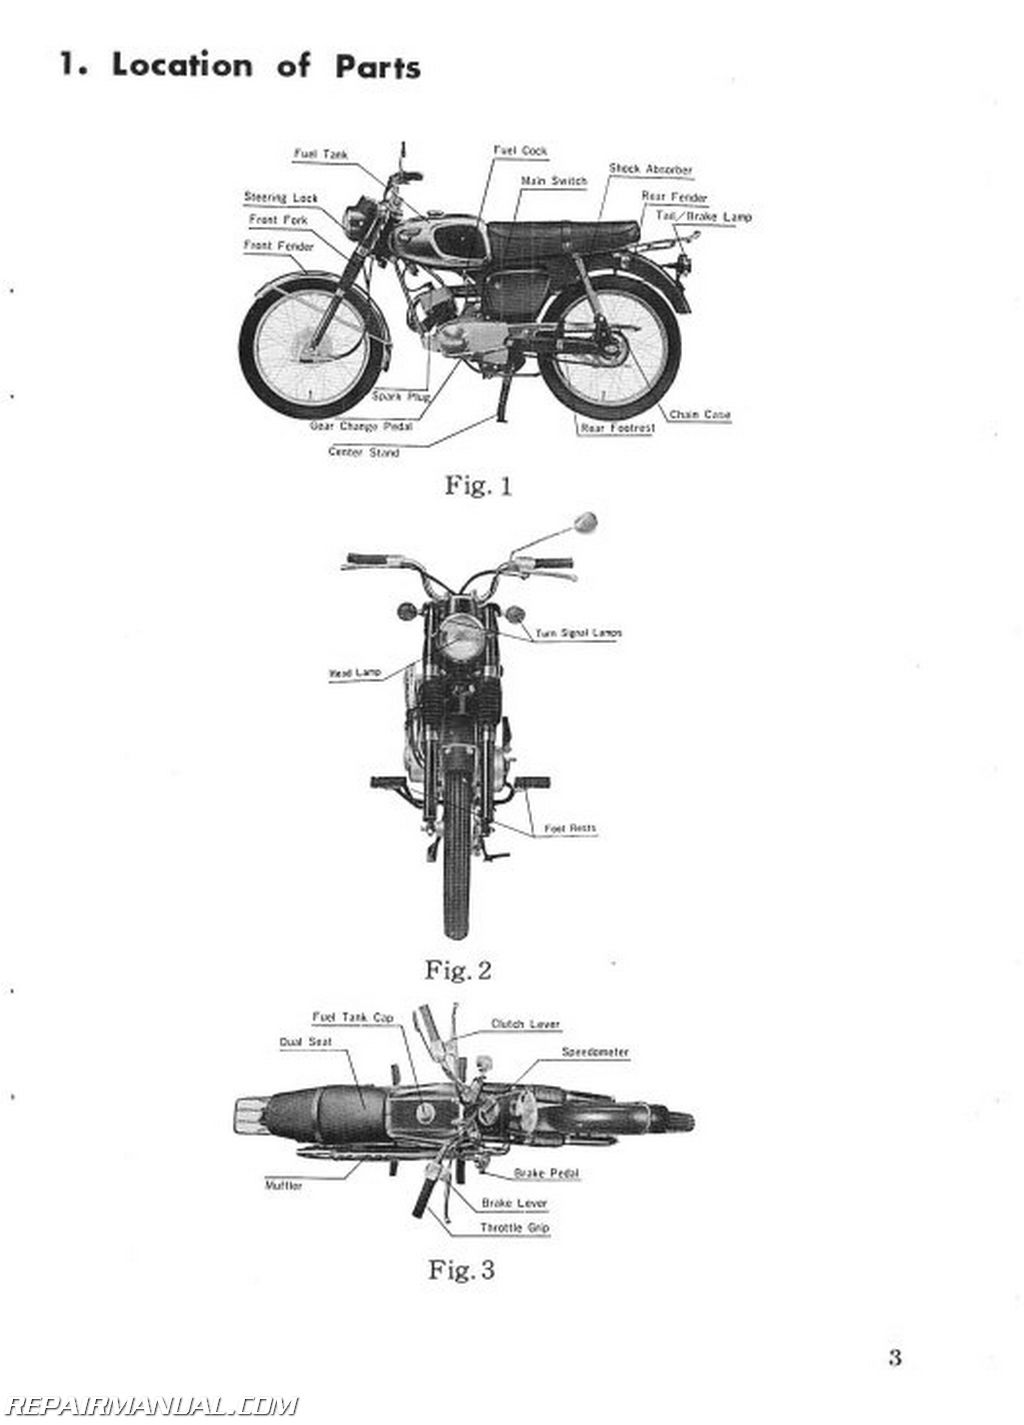 Kawasaki 85-J1T Owners Manual